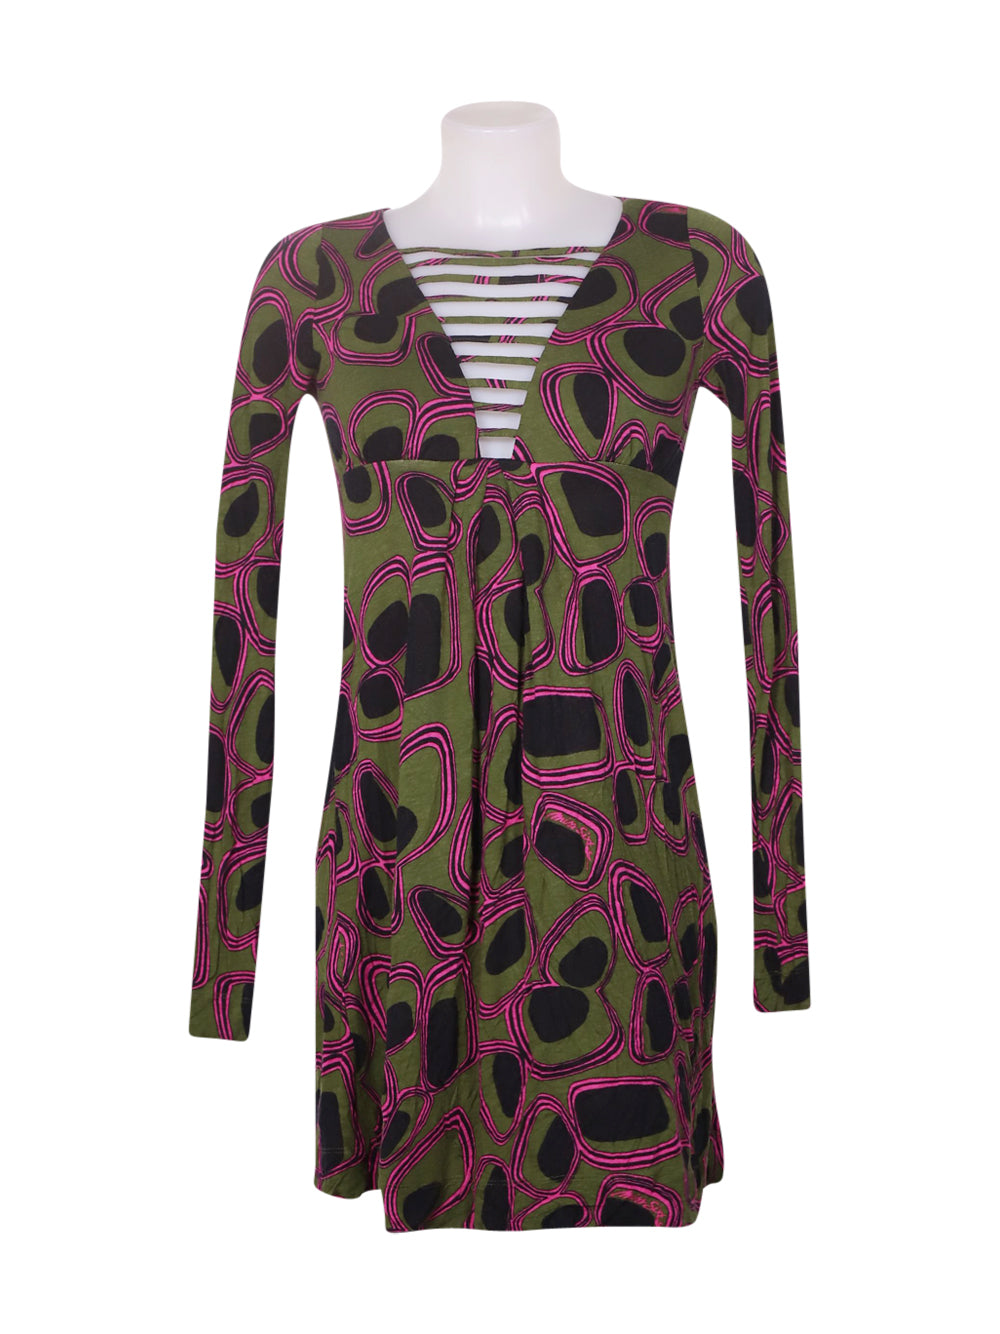 Front photo of Preloved Miss Sixty Green Woman's dress - size 8/S